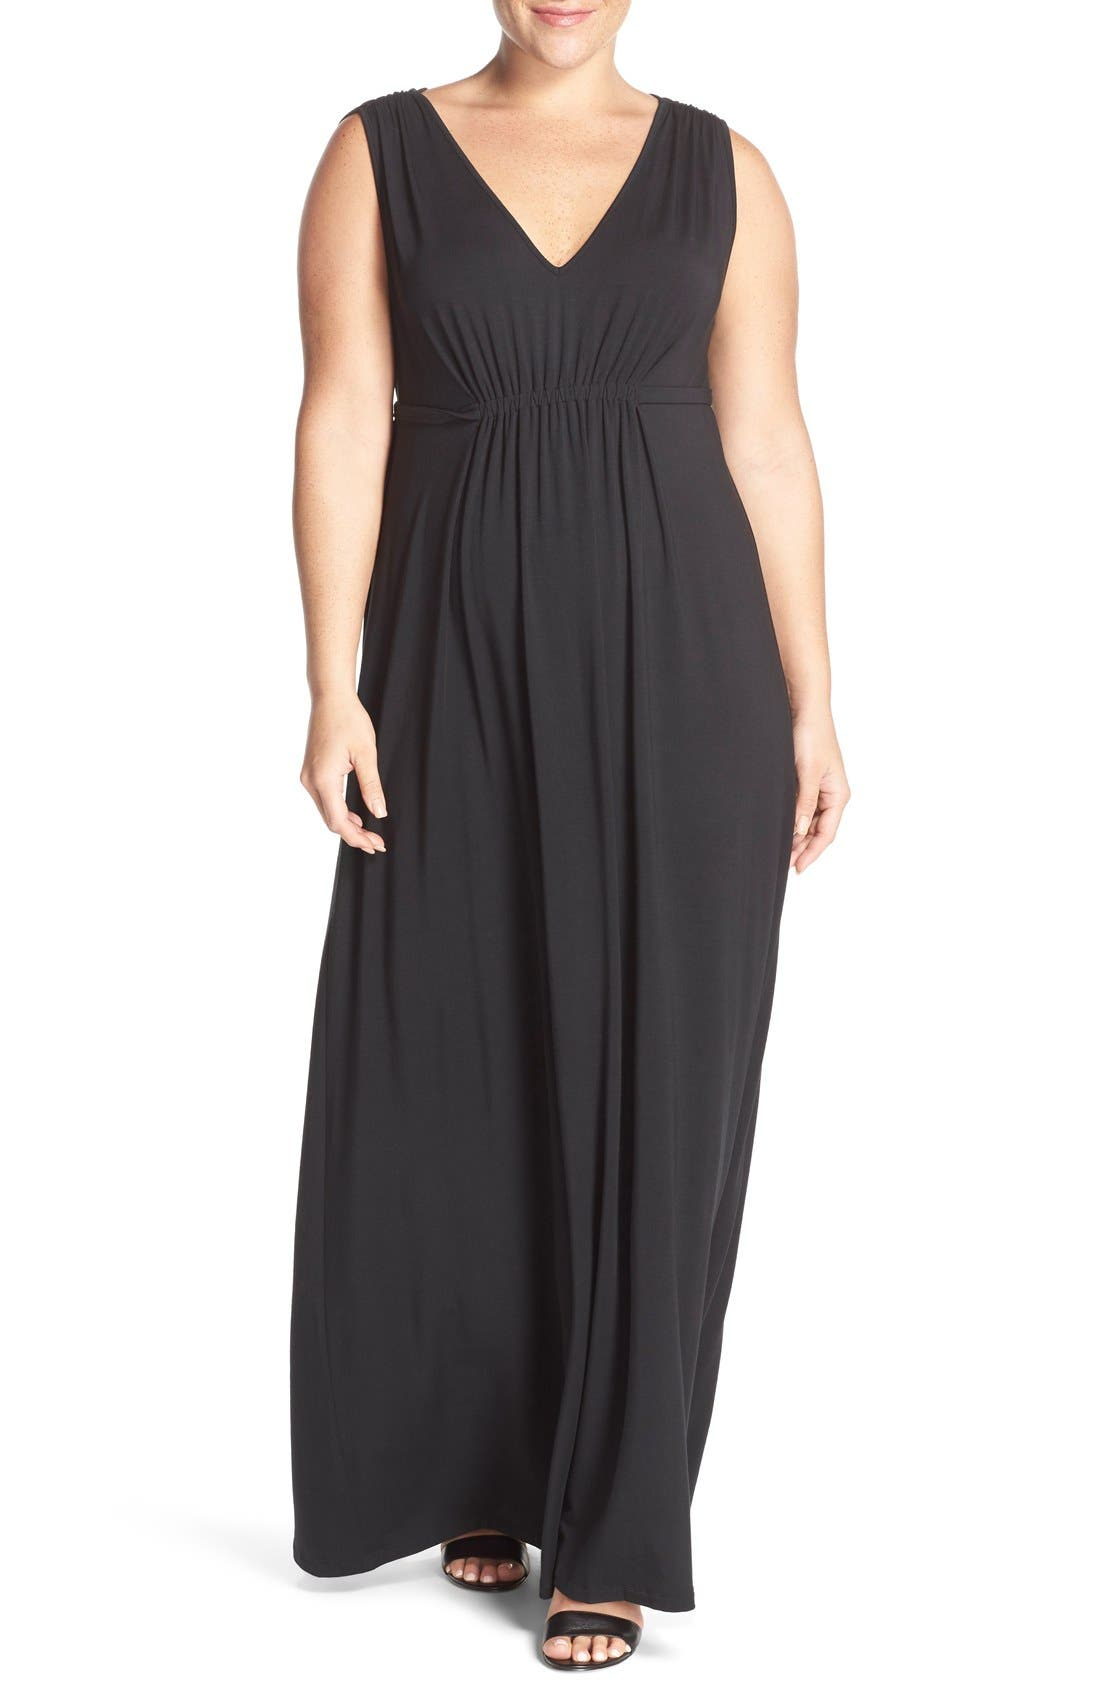 Tart Grecia Sleeveless Jersey Maxi Dress (Plus Size)